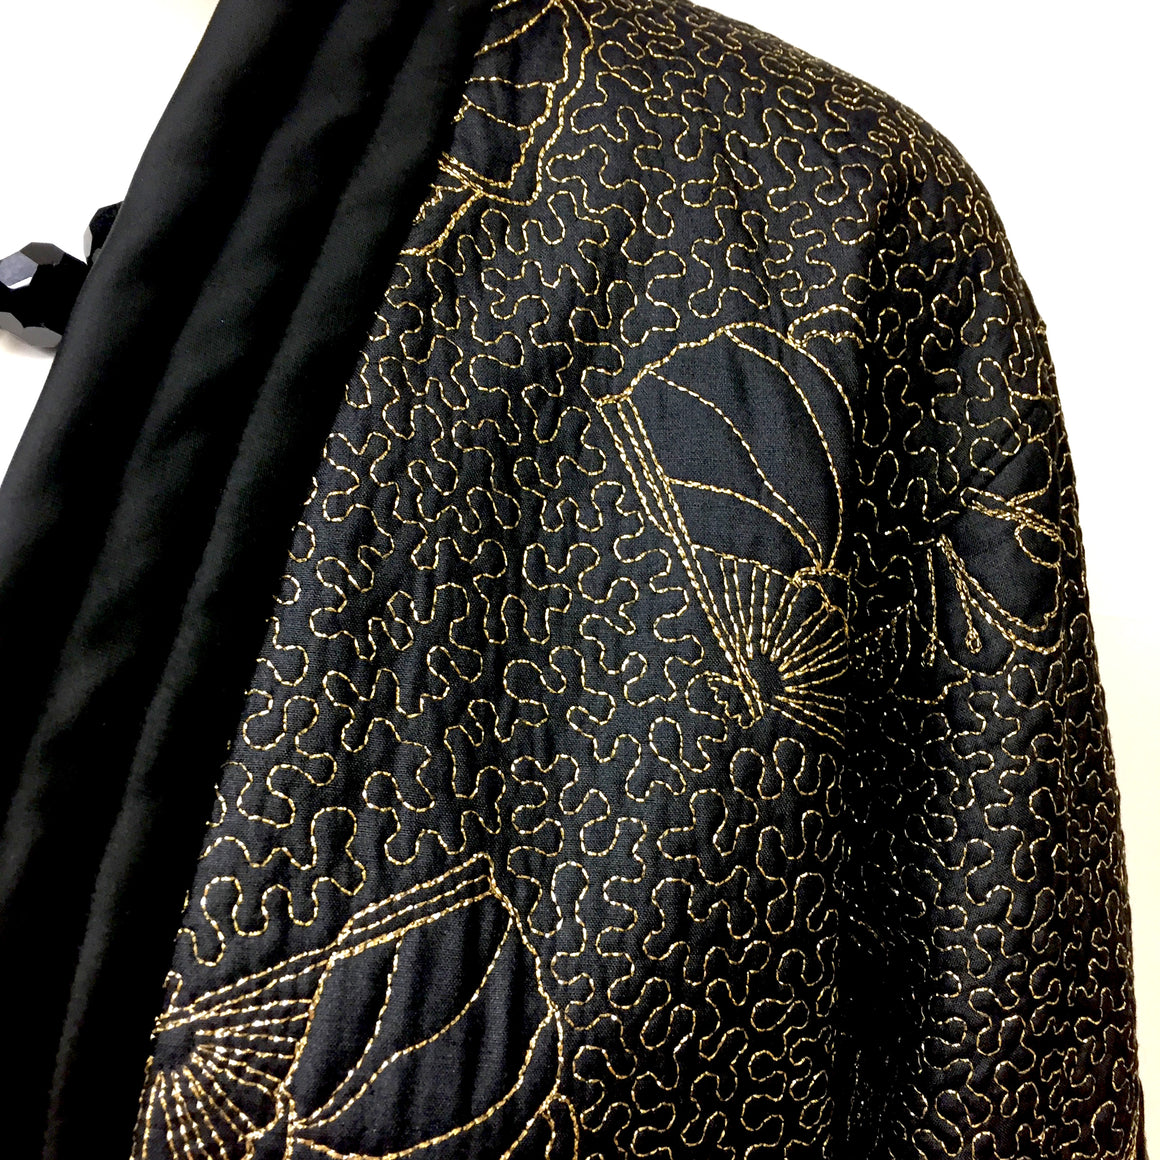 YVES SAINT LAURENT RIVE GAUCHE Vintage Fan-Patterned Gold Embroidered Black Silk Kimono Evening Jacket Size: FR 40 / US 8